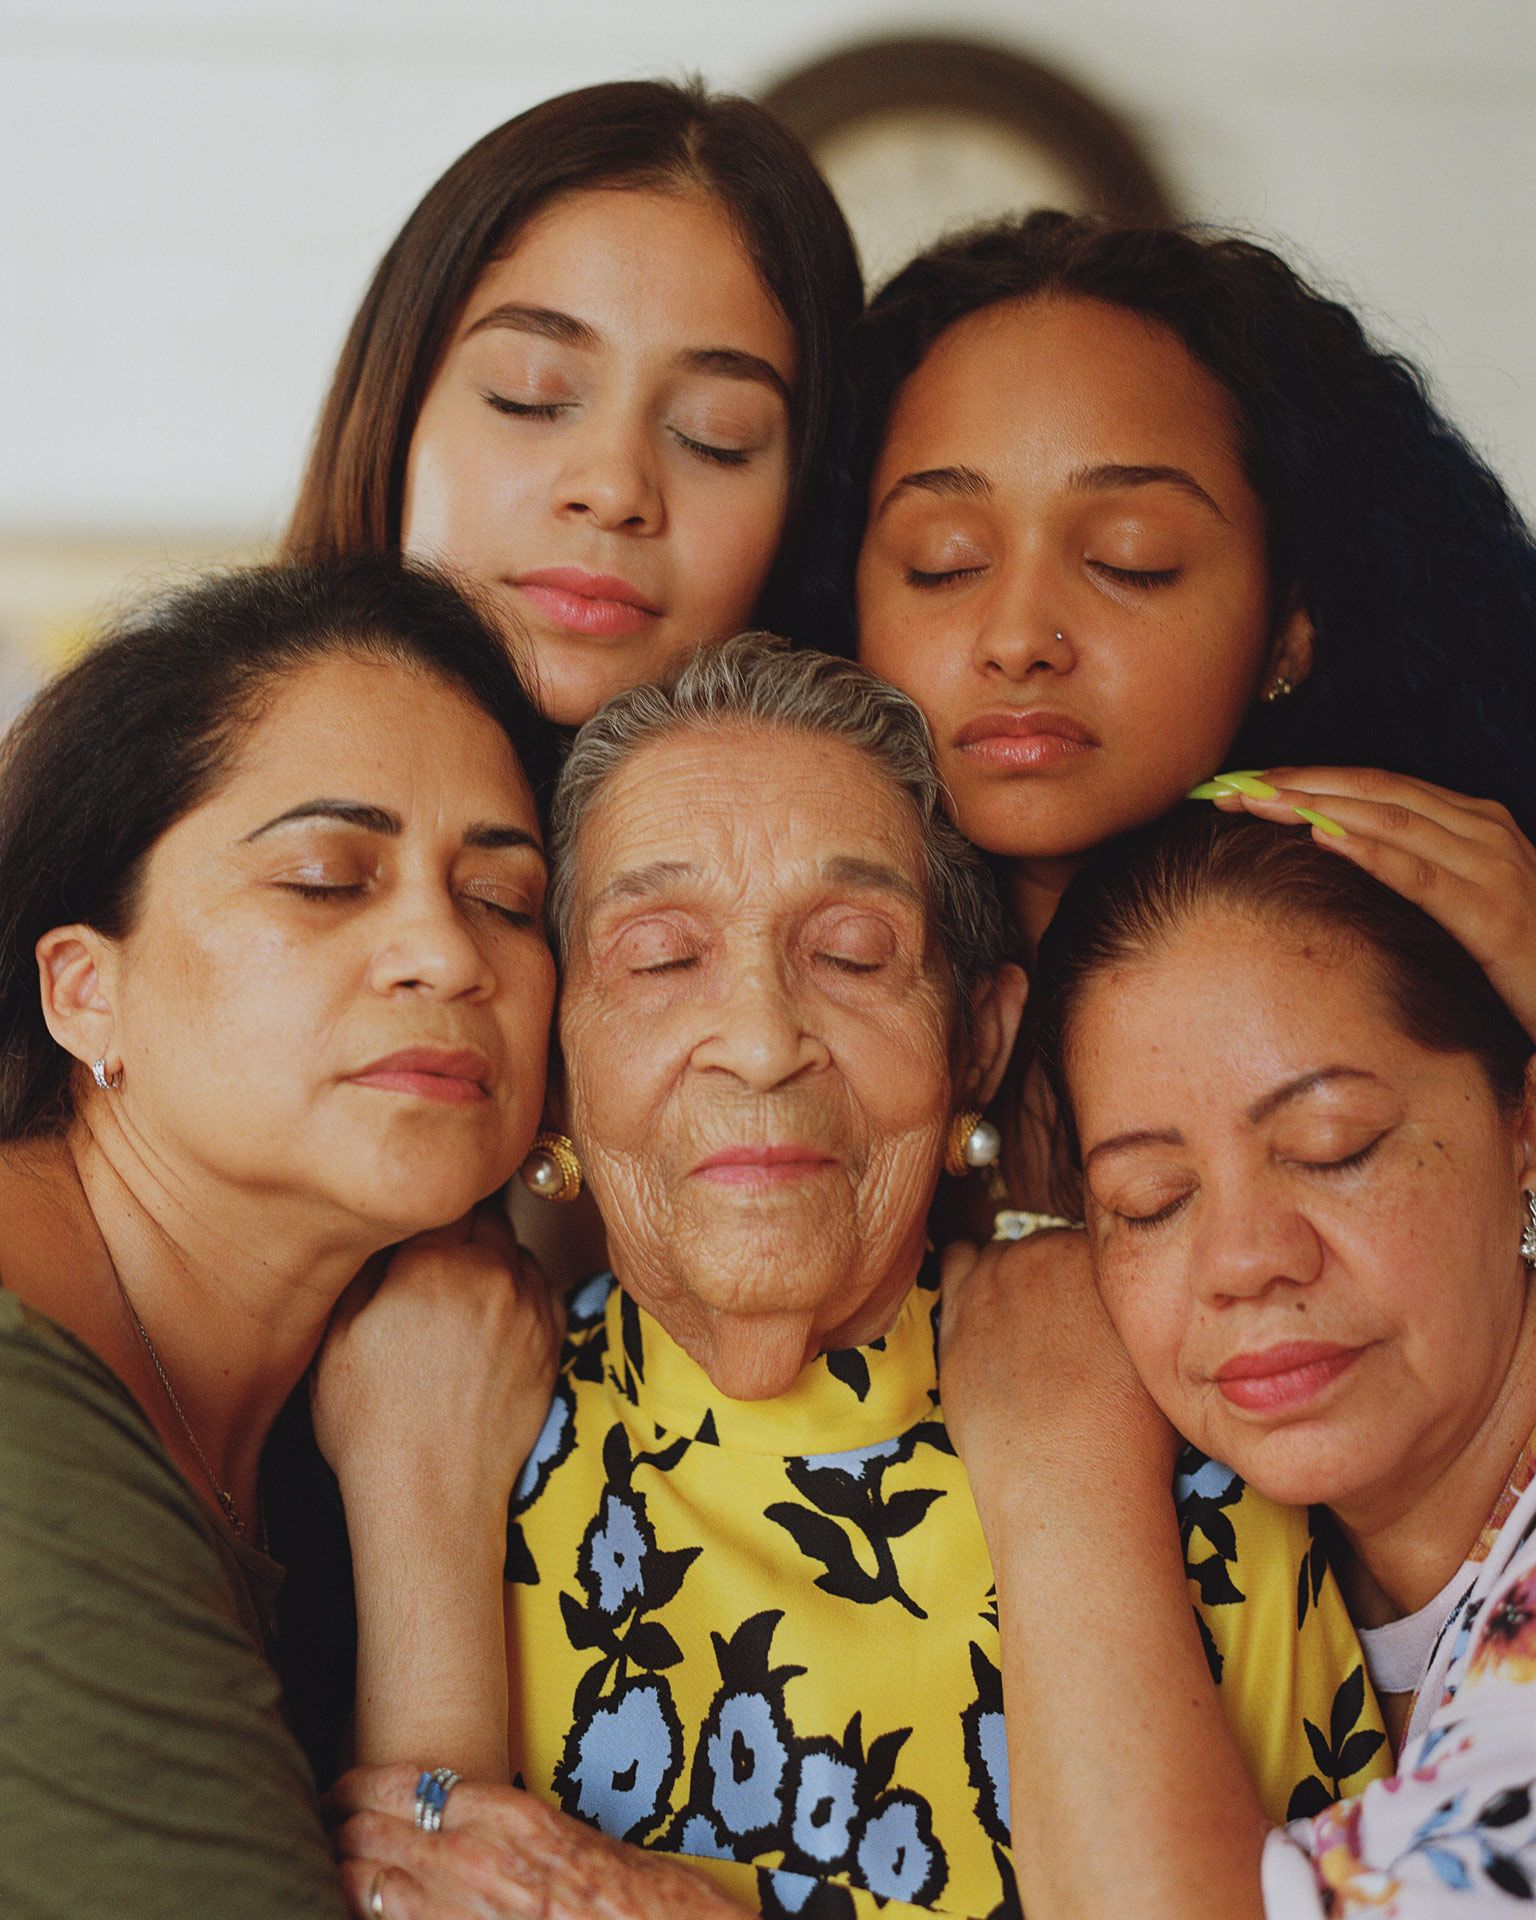 five generations of women posing together head against head around the oldest eyes closed by Oumayma B. Tanfous for Phosphenes Magazine